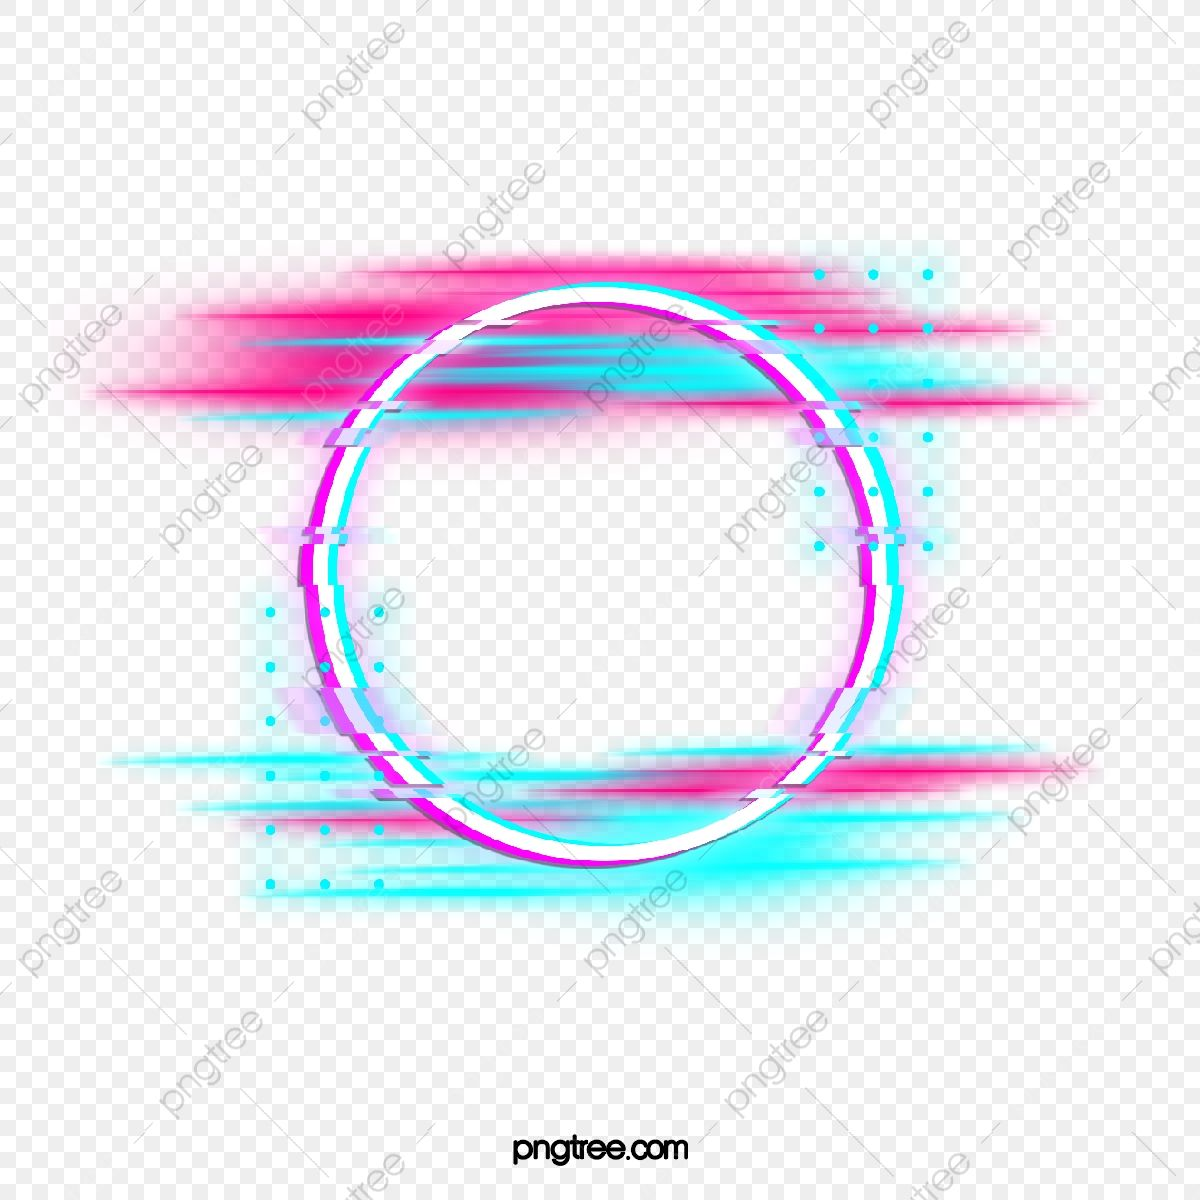 Blue Red Fault Neon Round Border Photo Holographic Circular Png Transparent Clipart Image And Psd File For Free Download Photoshop Video Tutorials Neon Png Round Border